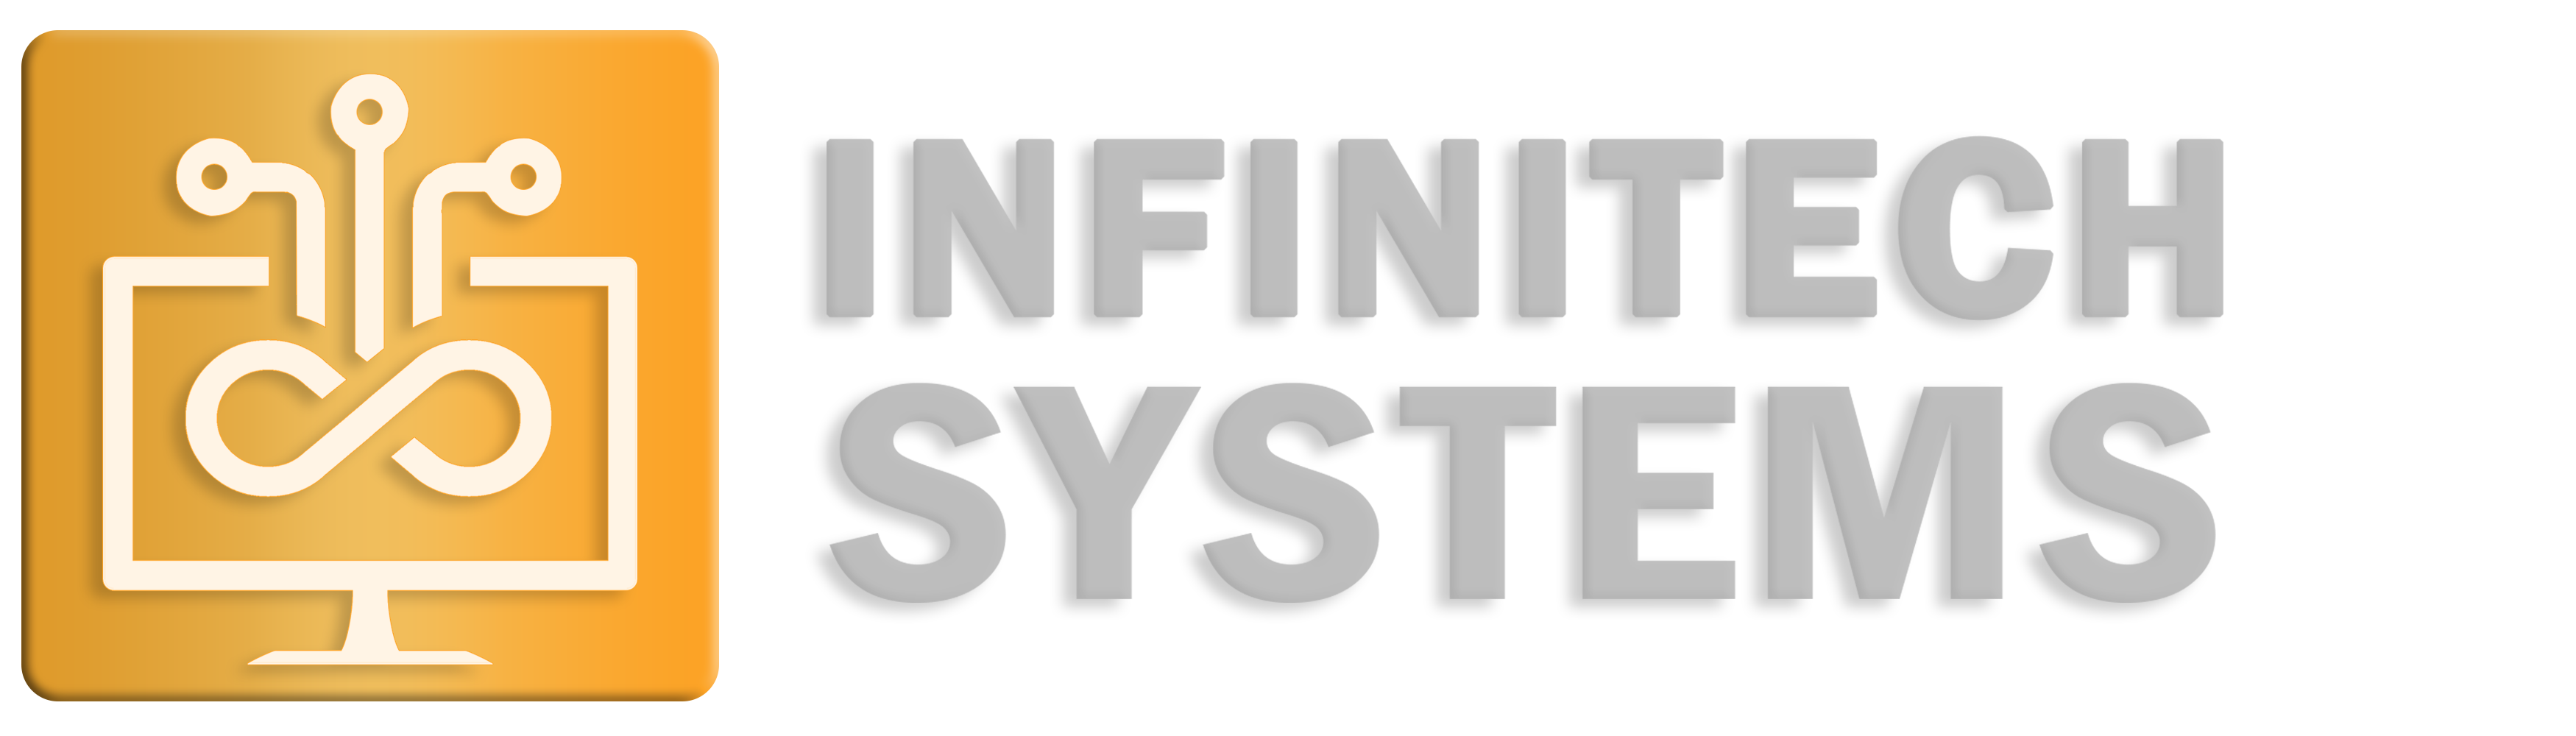 InfiniTech Systems